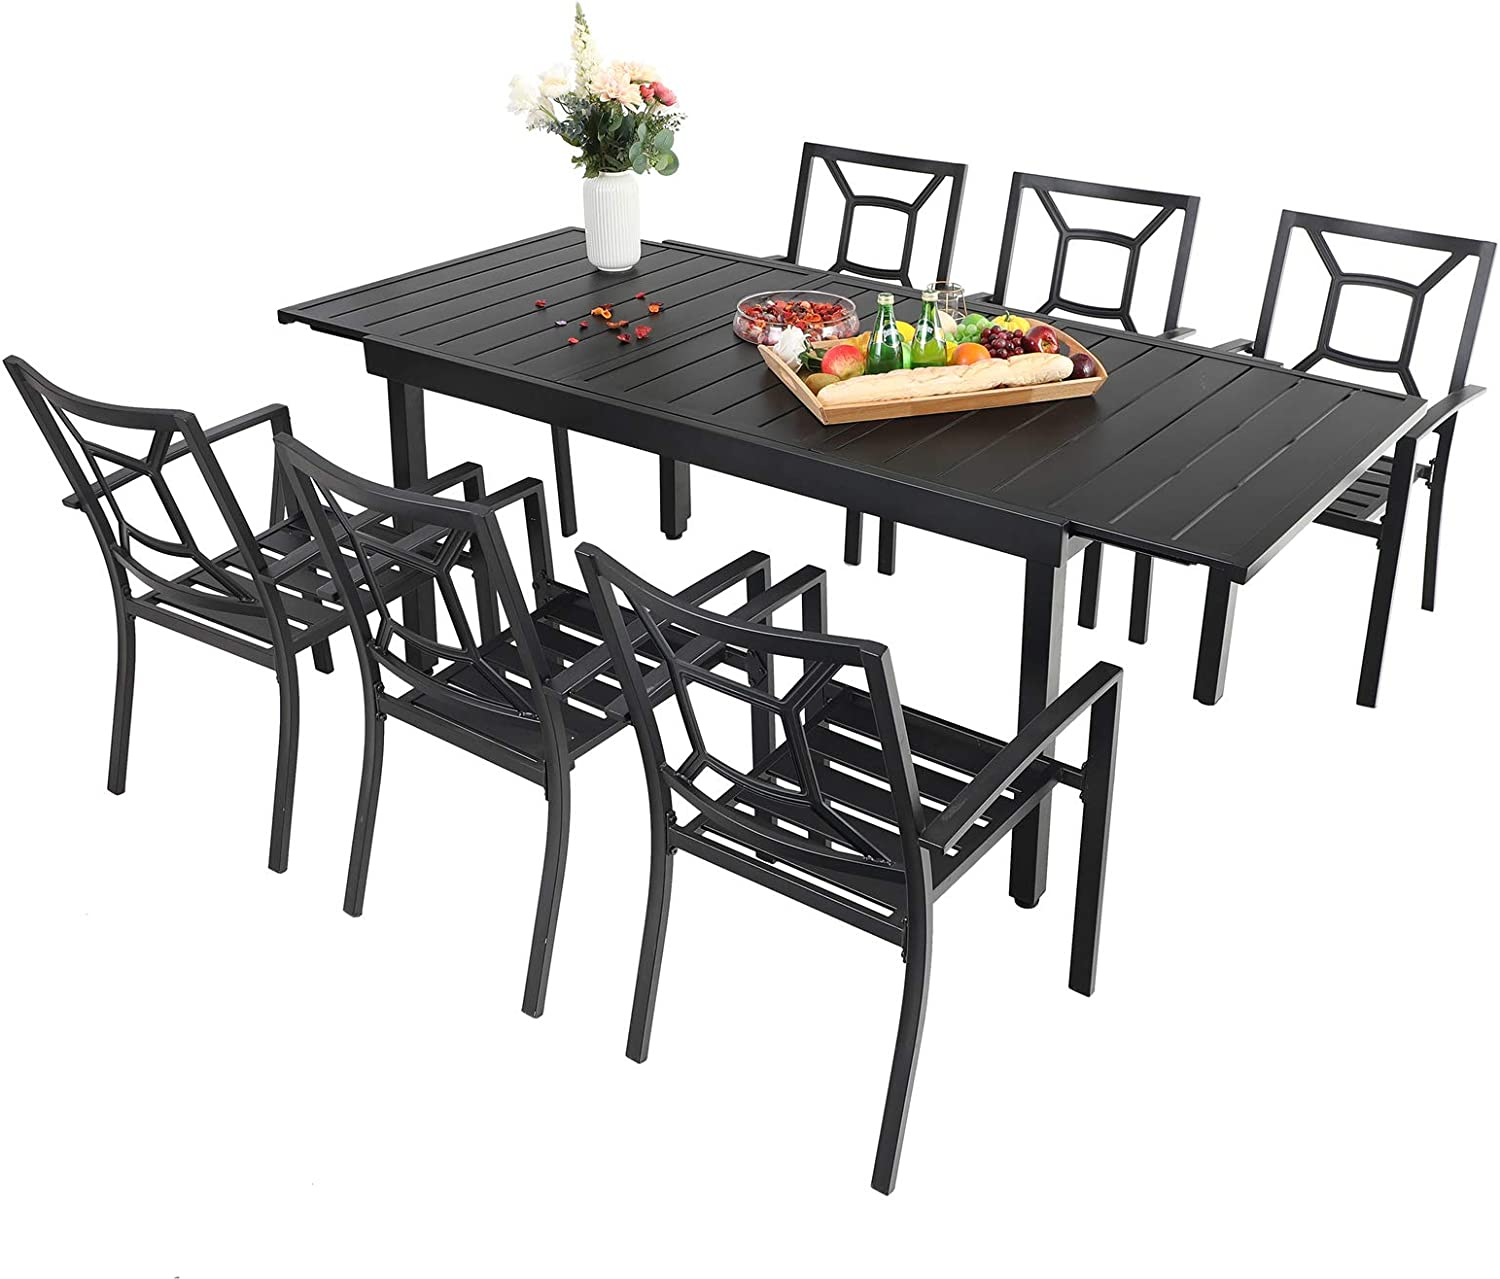 low-pricing Sophia William Expandable Patio Dining Set Tabl Metal Outdoor Special sale item